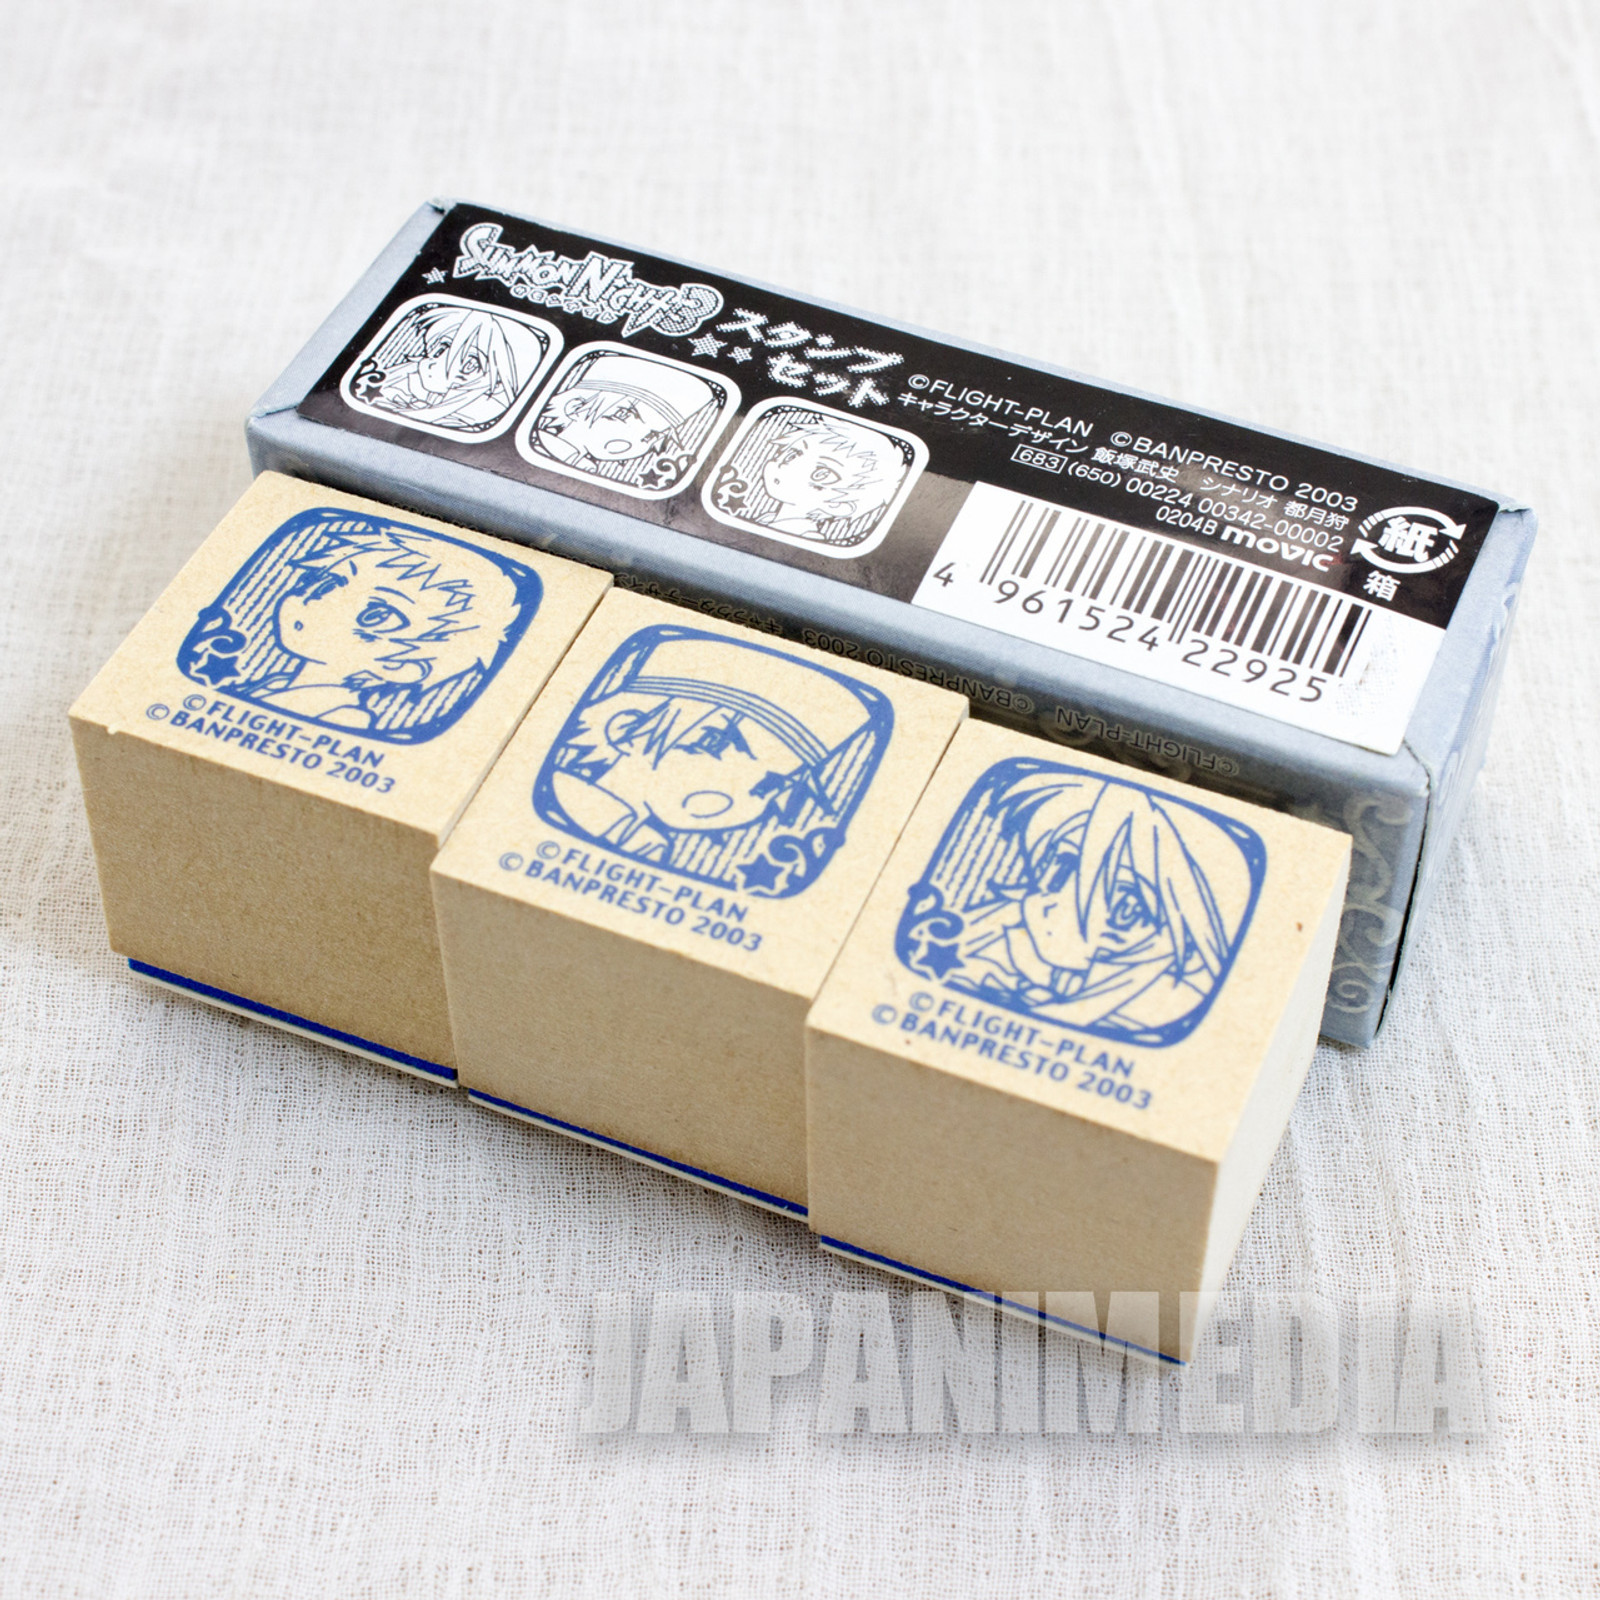 Summon Night 3 Stamp 3pc Set [Aty / Will Martini / Nup Martini] PS2 JAPAN GAME